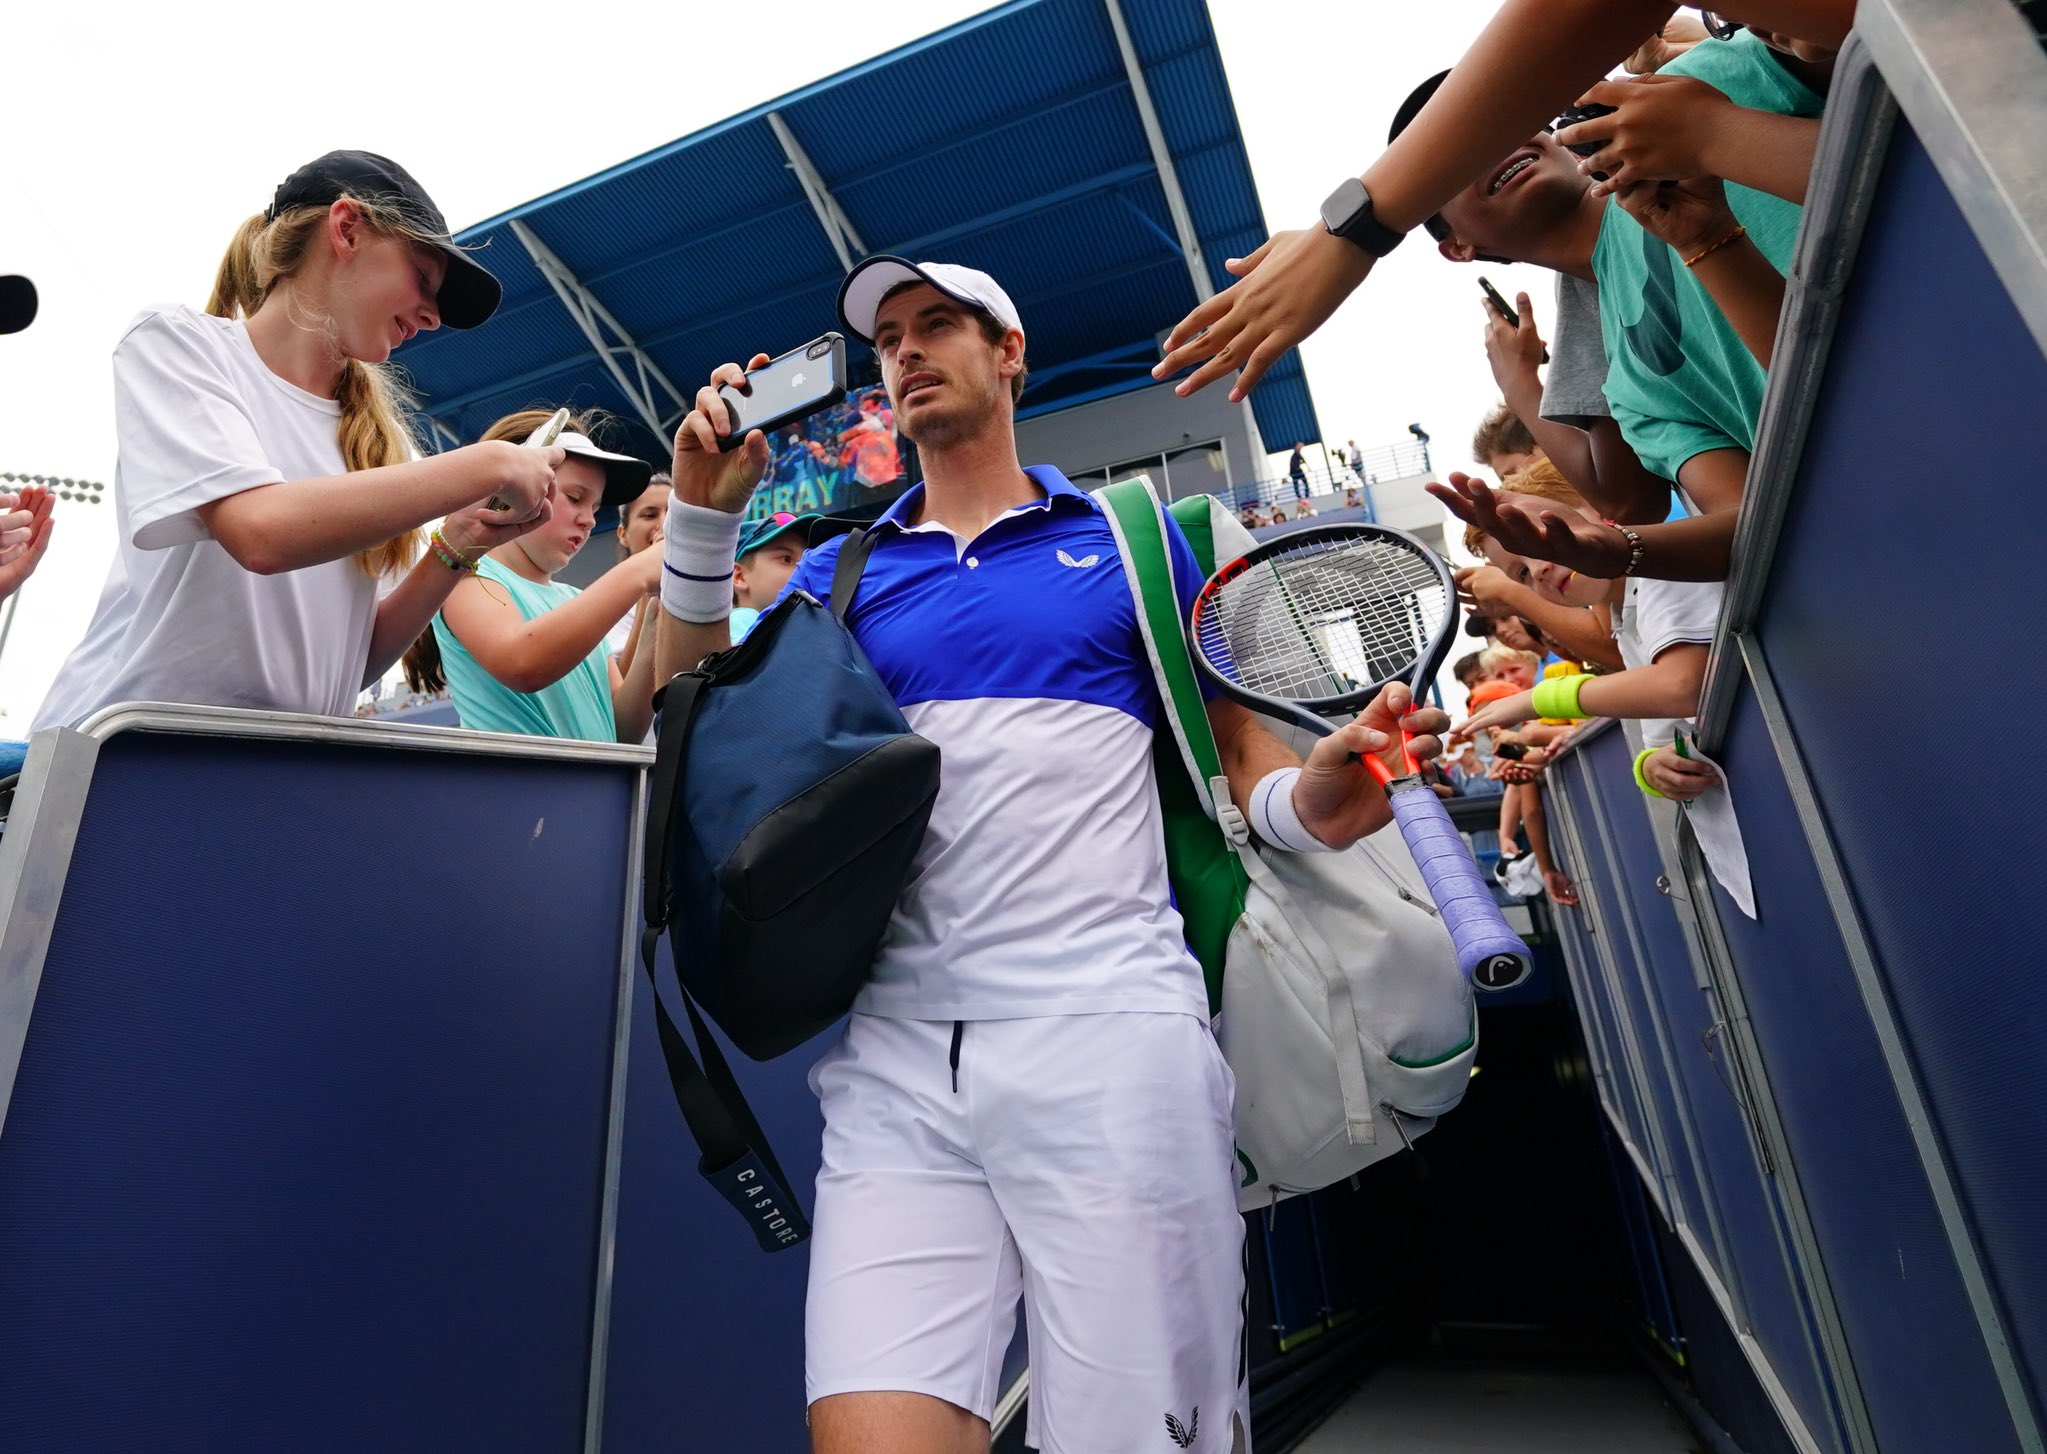 The Casual Tennis Fans Nostalgia For >> Official Site Of The 2019 Us Open Tennis Championships A Usta Event